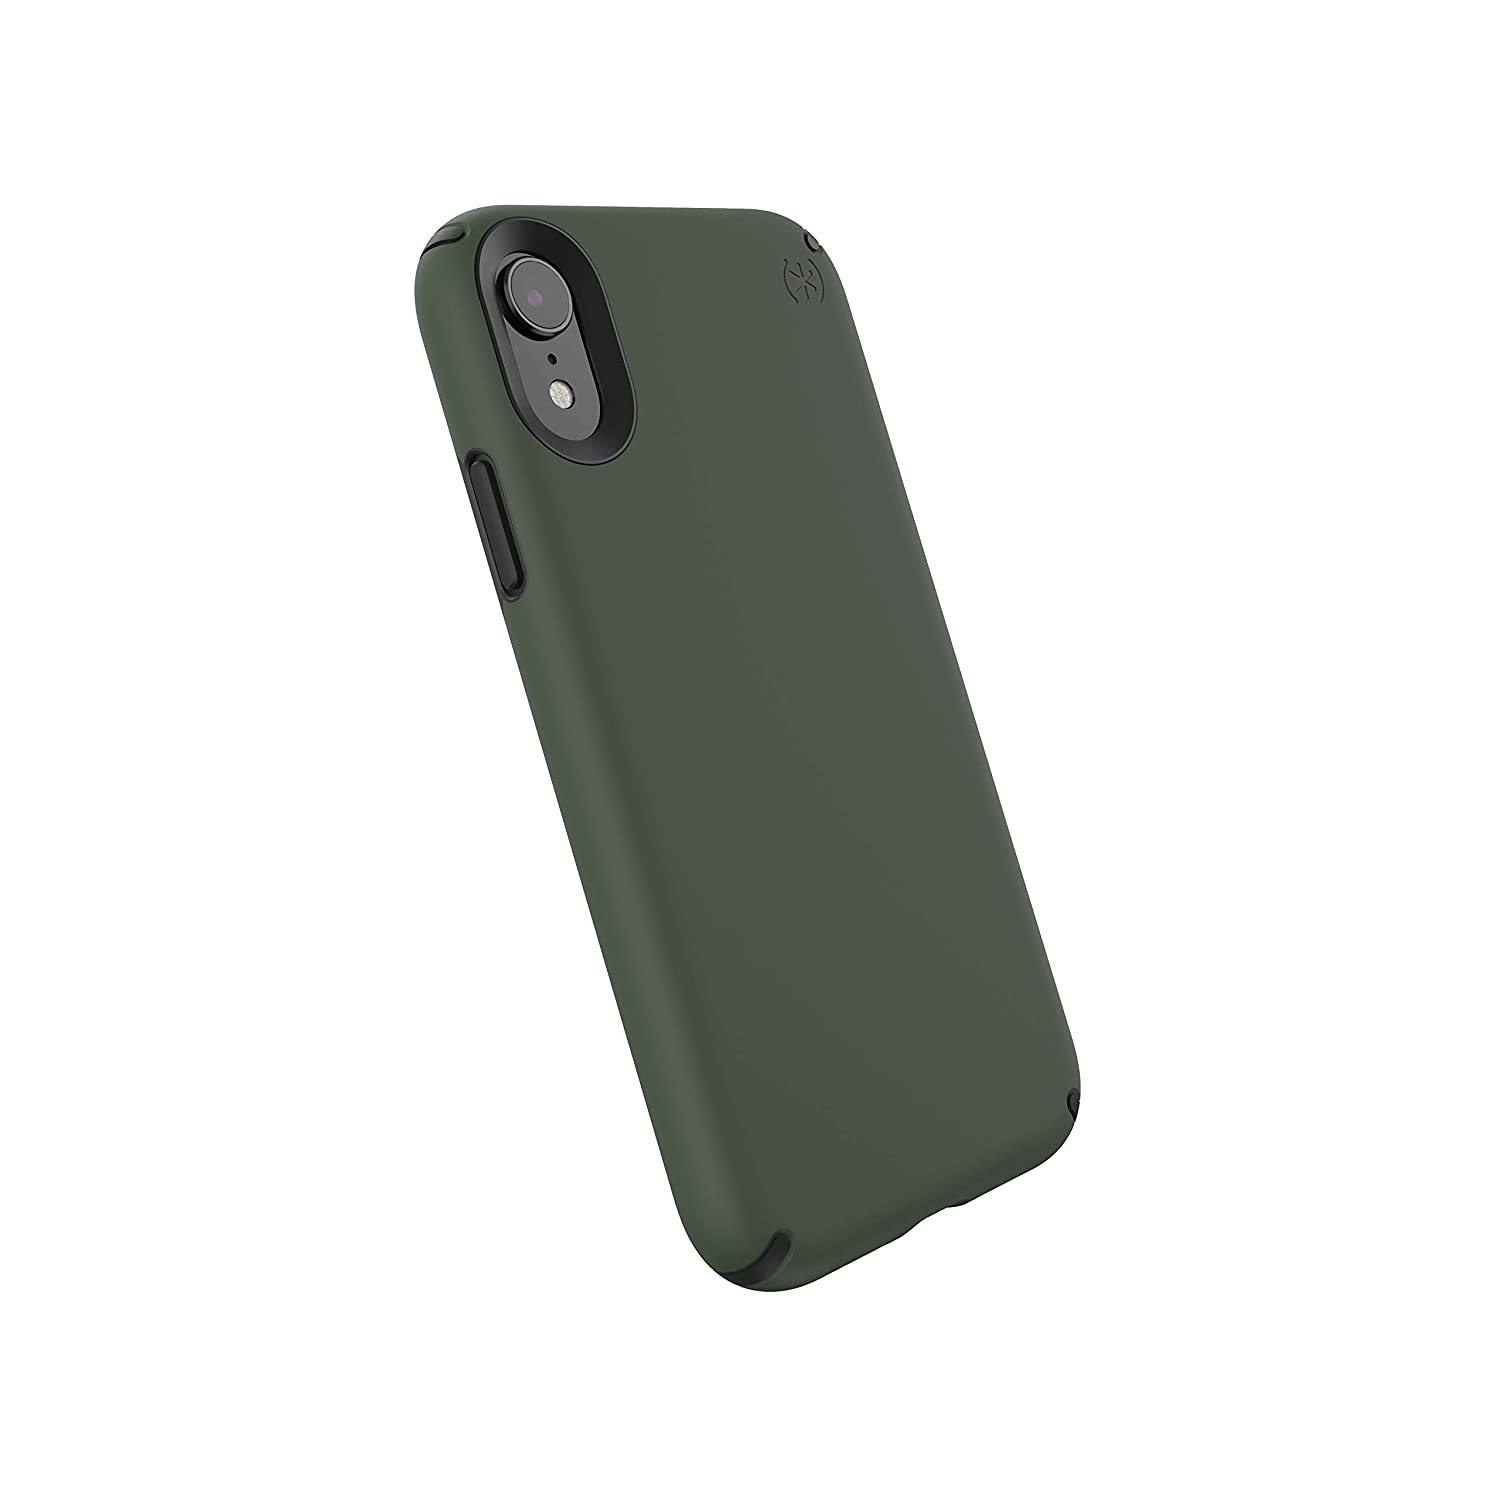 Speck Products Presidio Pro I Phone Xr Case, Dusty Green/Brunswick Black by Speck